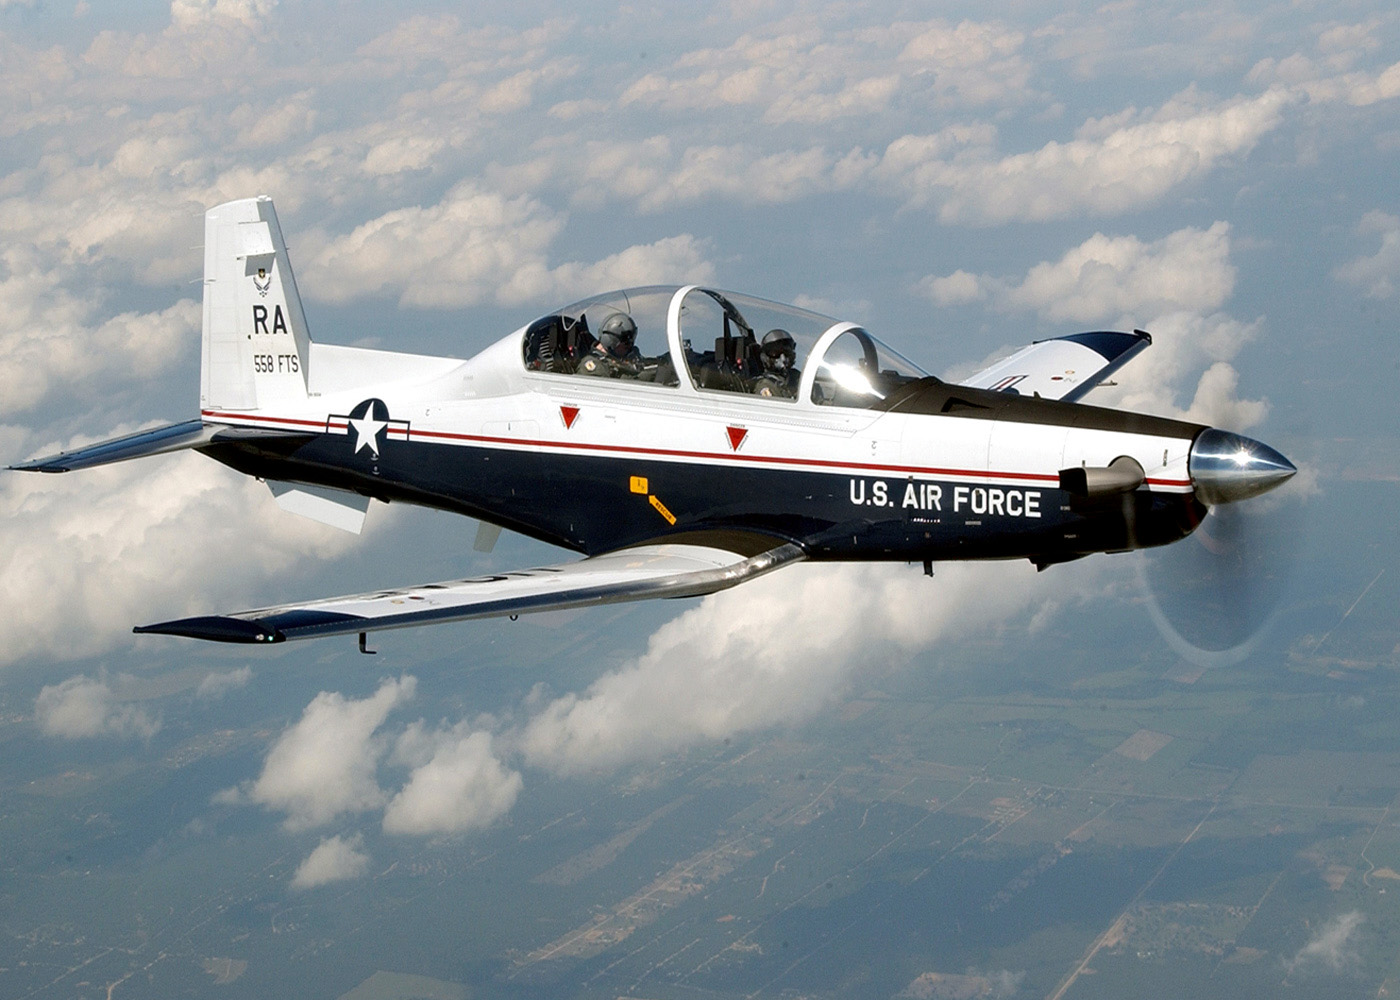 T-6As remain grounded at Vance Air Force Base after hypoxia scares